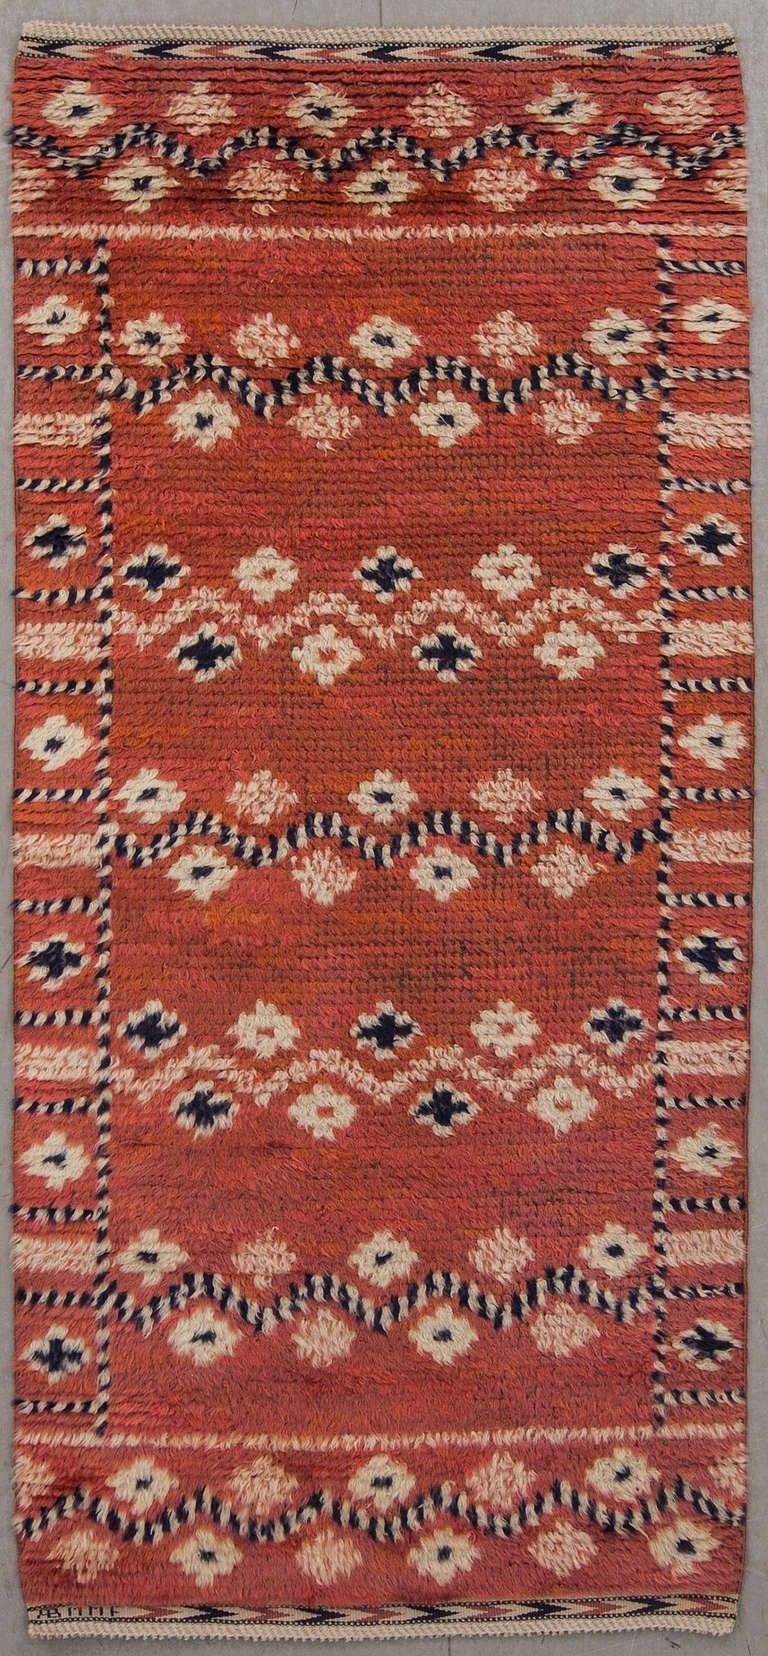 Rare Carpet Red Trial By Ab Marta Maas Fjetterstrom Scandinavian Rug Rugs On Carpet Carpet